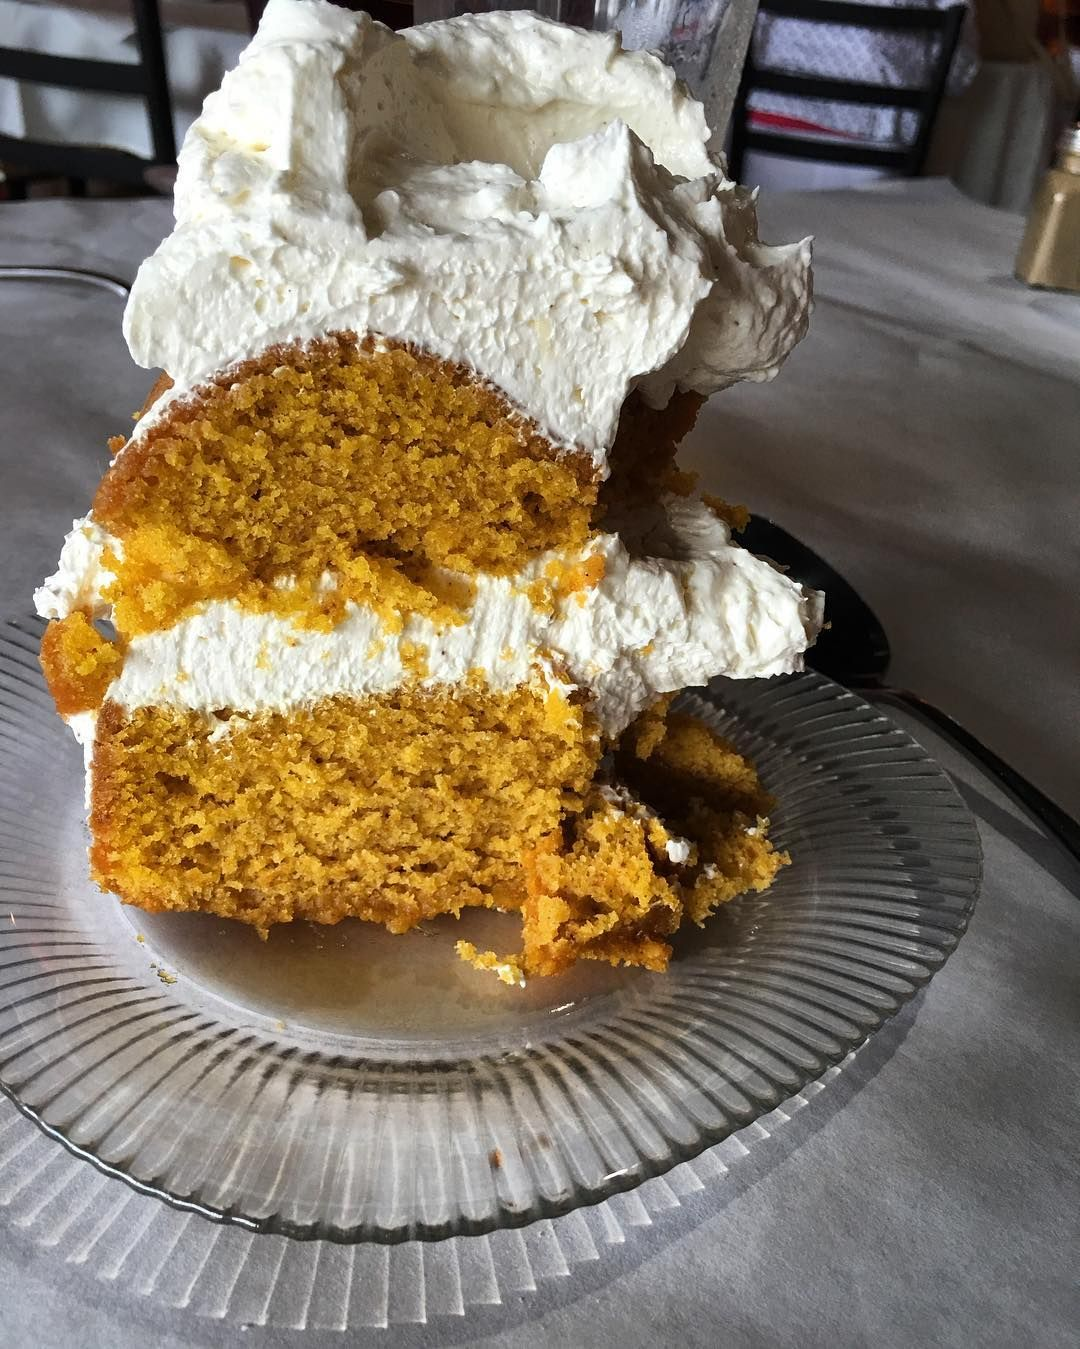 So... True confession. Fall is my favorite season. However, it is still summertime... And 90 degrees and humid and the leaves and grass are all green. Some crepe myrtles are still blooming, y'all. But this Pumpkin Spice Cake at lunch today slammed me right into fall. At least for a moment. @robinl09 @jeg.noble @jamesfarmerinc #atlanta #interiordesign #workday #almostfall #stillsummertime #pumpkinspicecake #cafelapin #peachtreebattle #southernstyle #farmerstyle 🍂🍁🙈🎃🍰